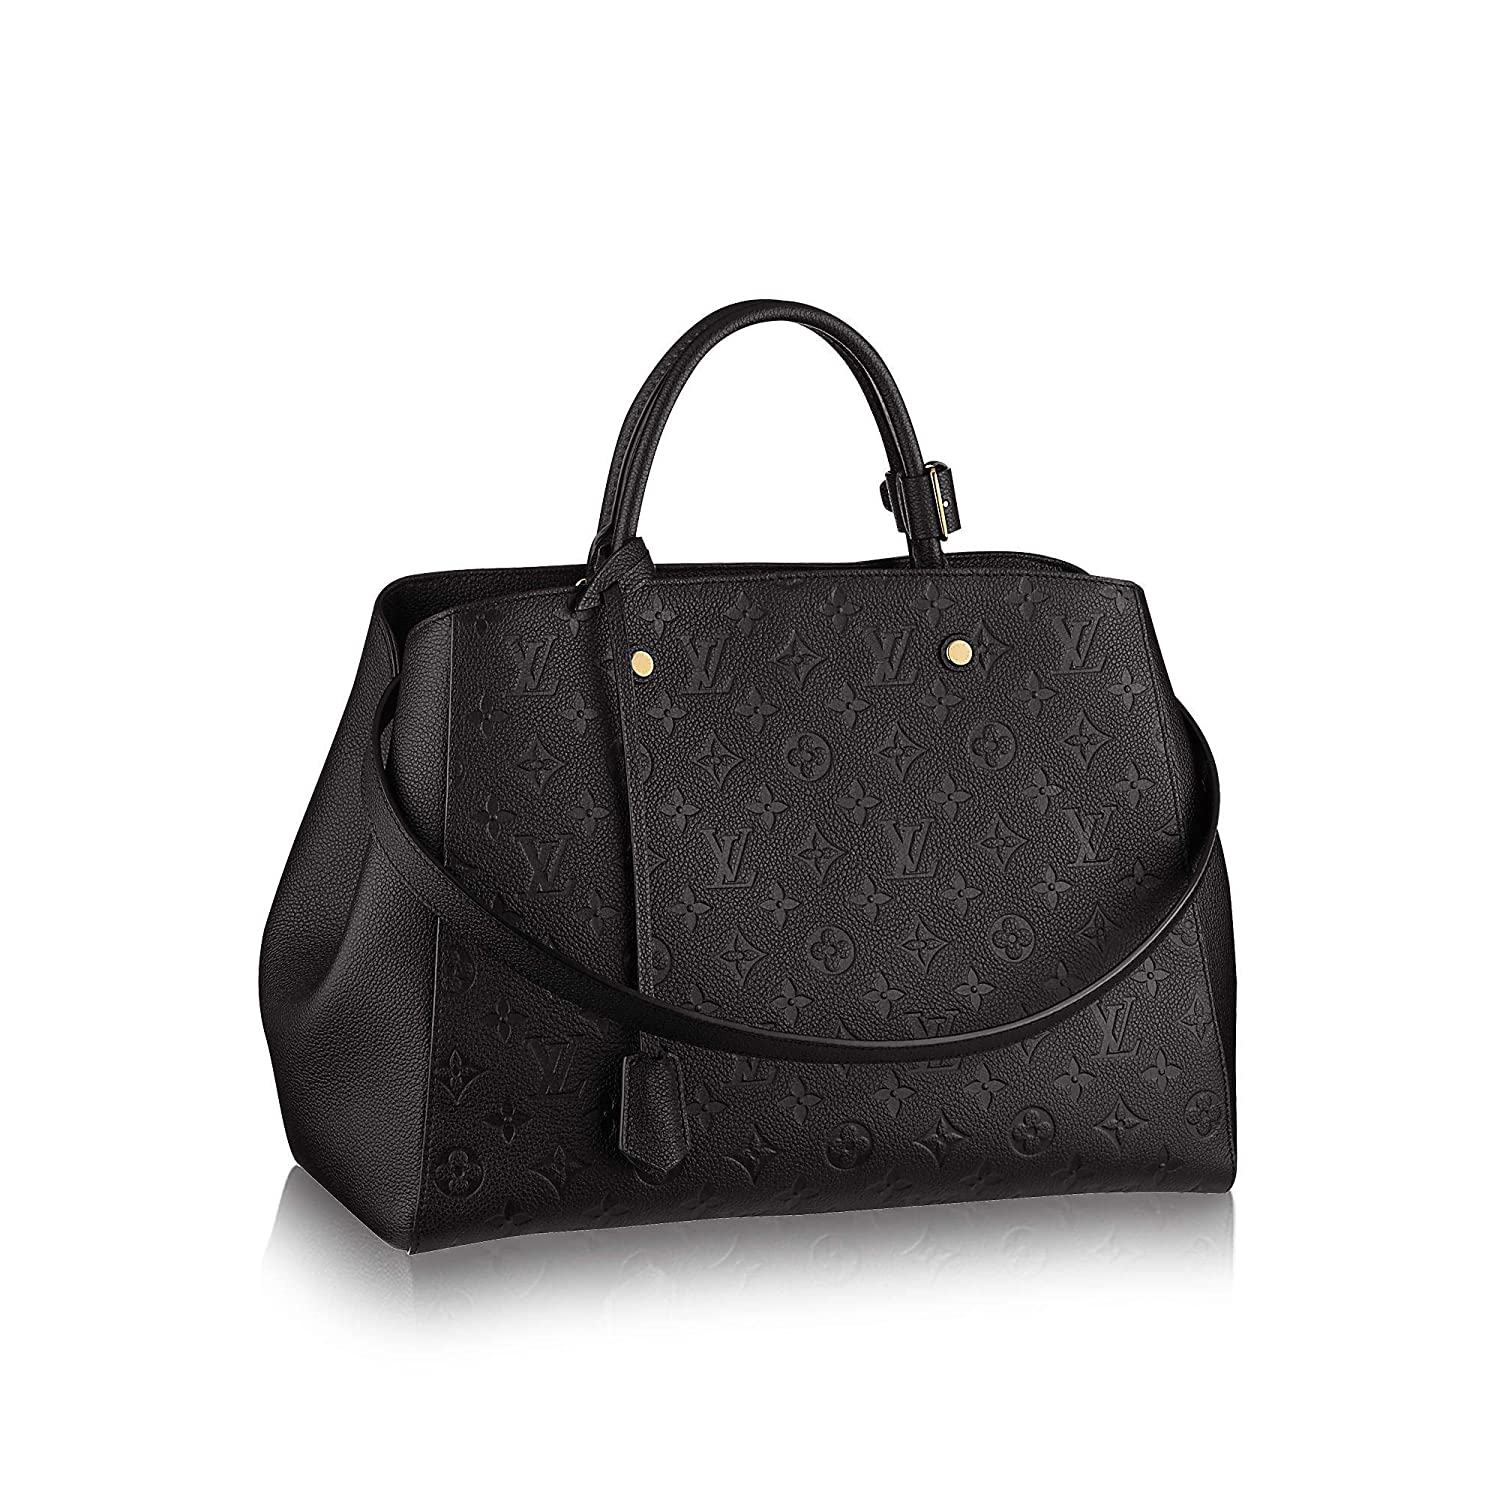 6173ac8f04c02 Amazon.com: New!! MONTAIGNE Style Leather Handbags On promotion 13.0 x 9.1  x 5.9 inches: Cell Phones & Accessories